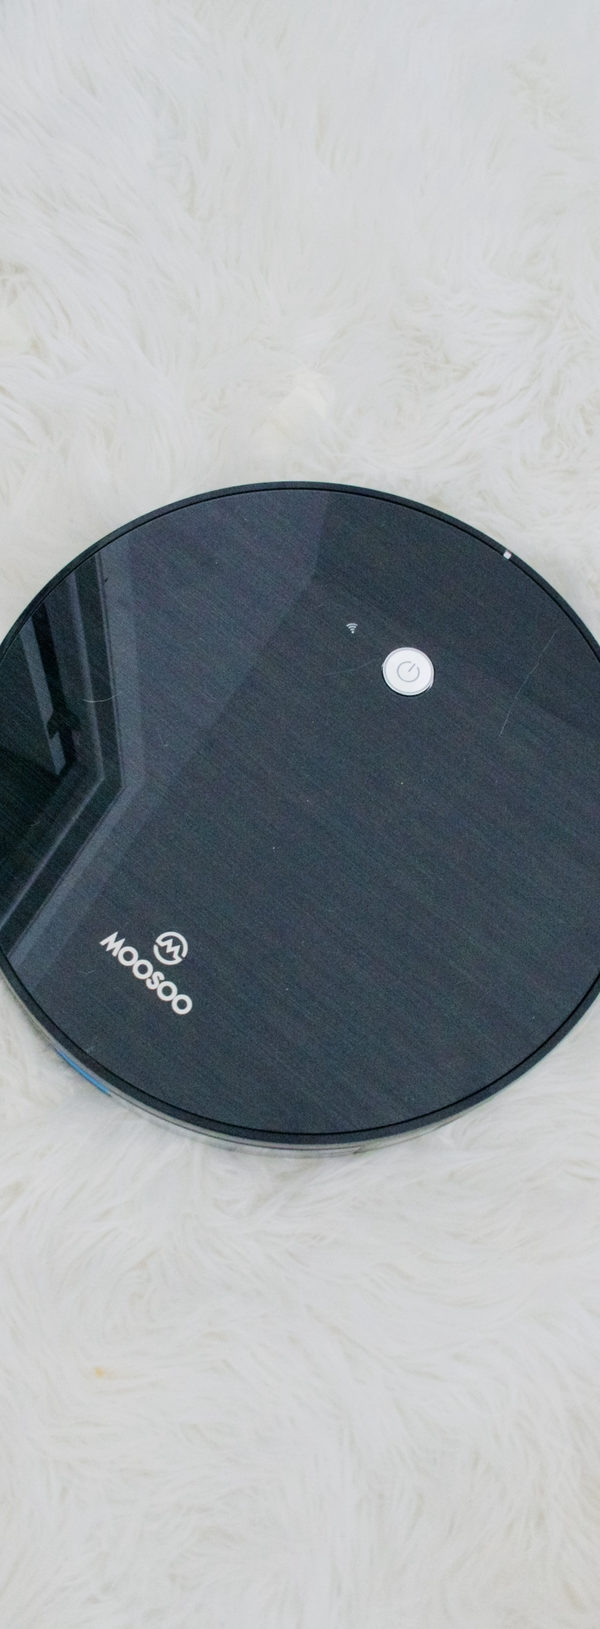 MOOSOO Robot Vacuum Super-Thin 1800Pa Strong Suction Quiet MT-501 – very high quality at low price!